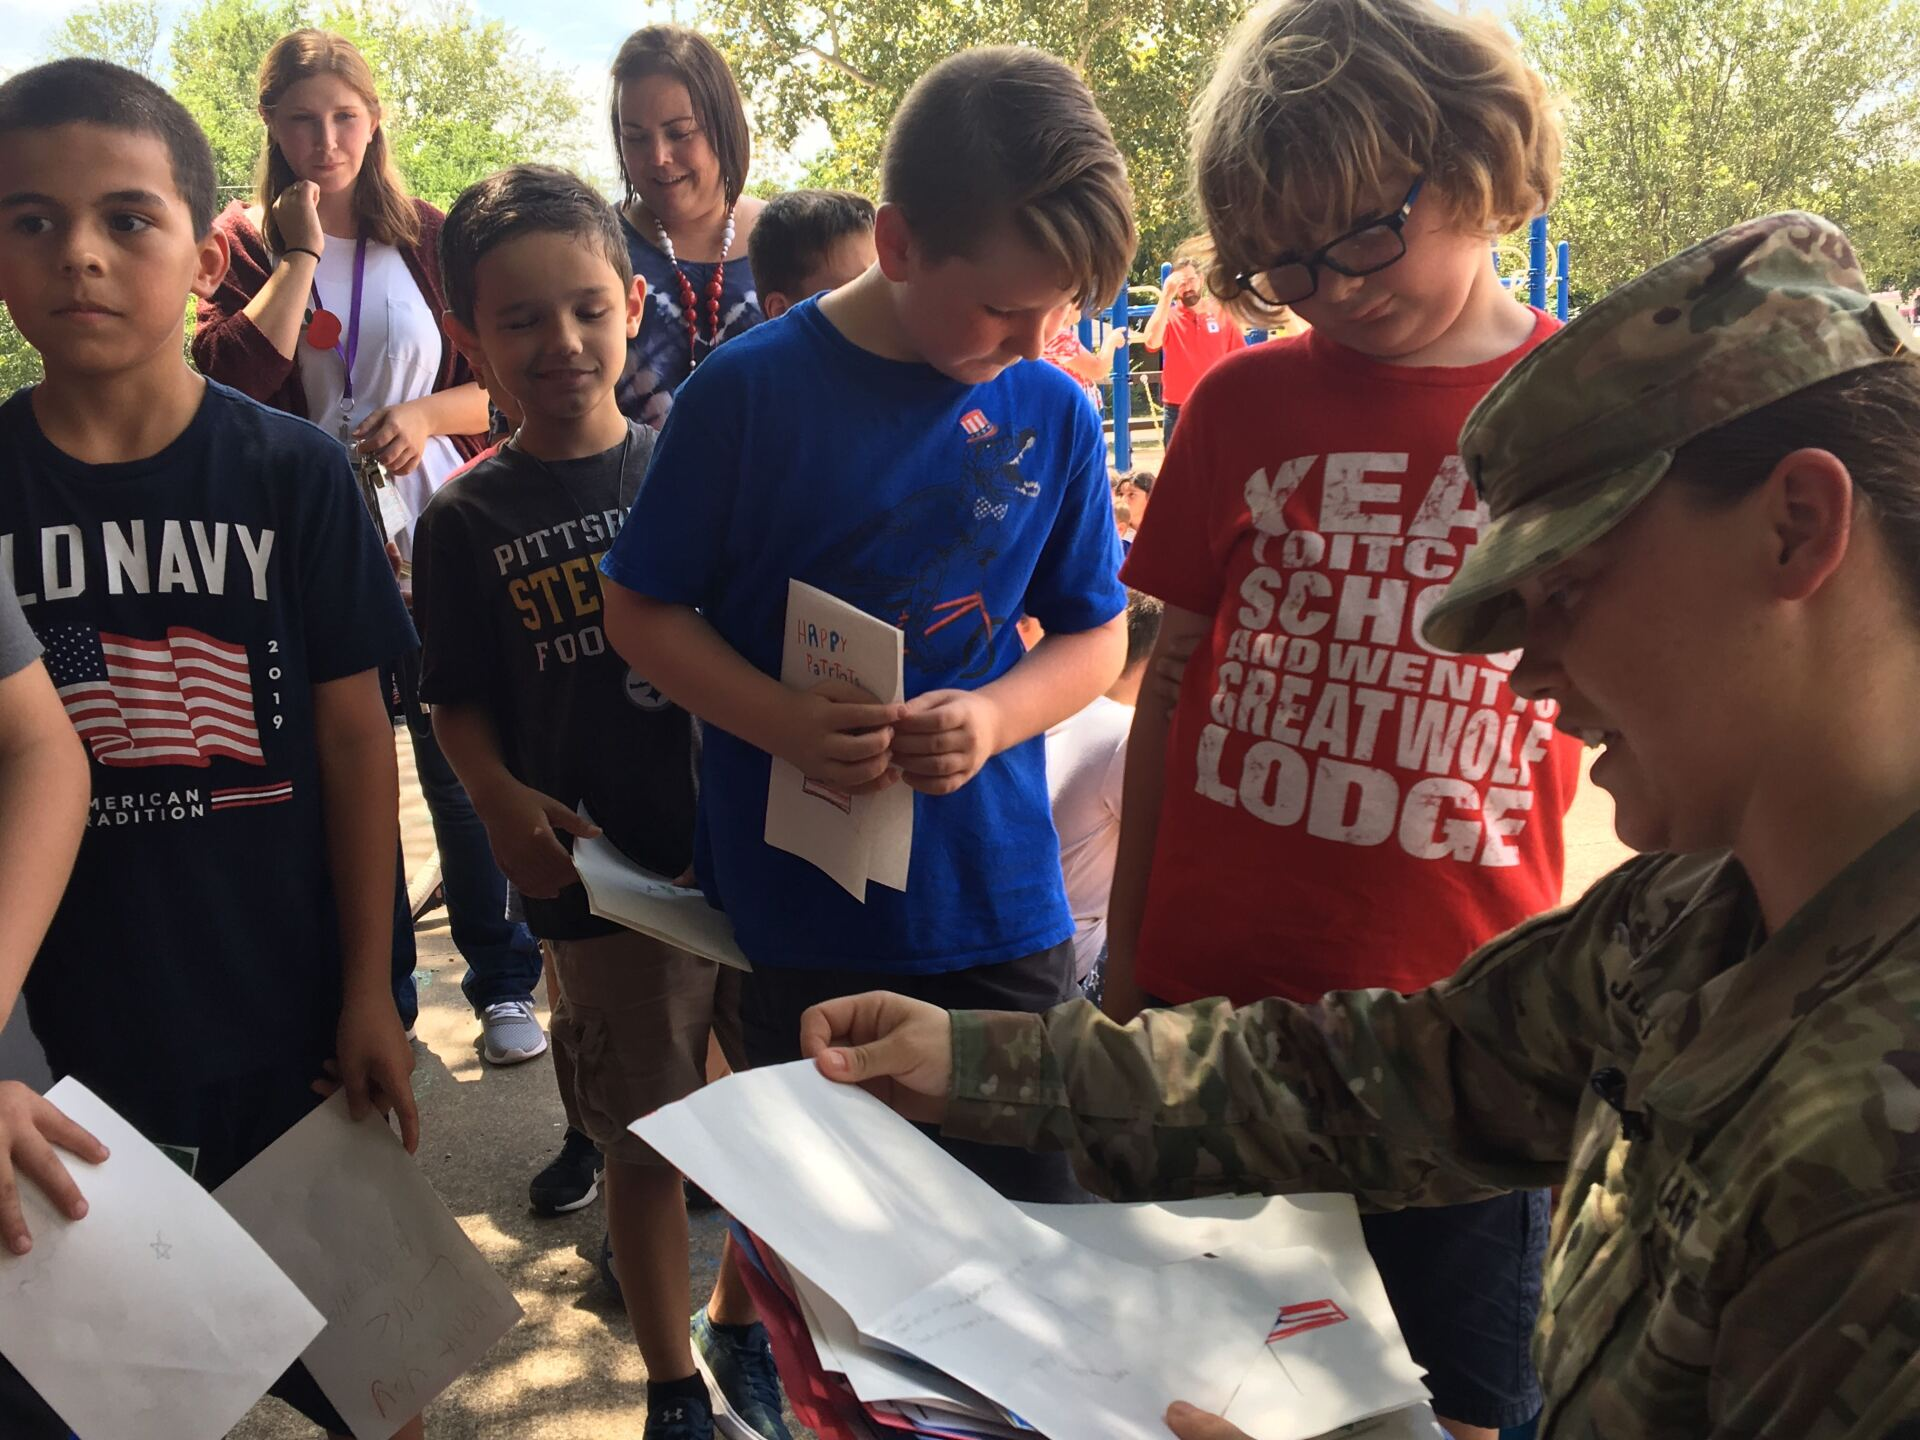 Leon Heights students make cards for First Responders, Military Adopters and present them to soldiers working their book fair on 9/11.